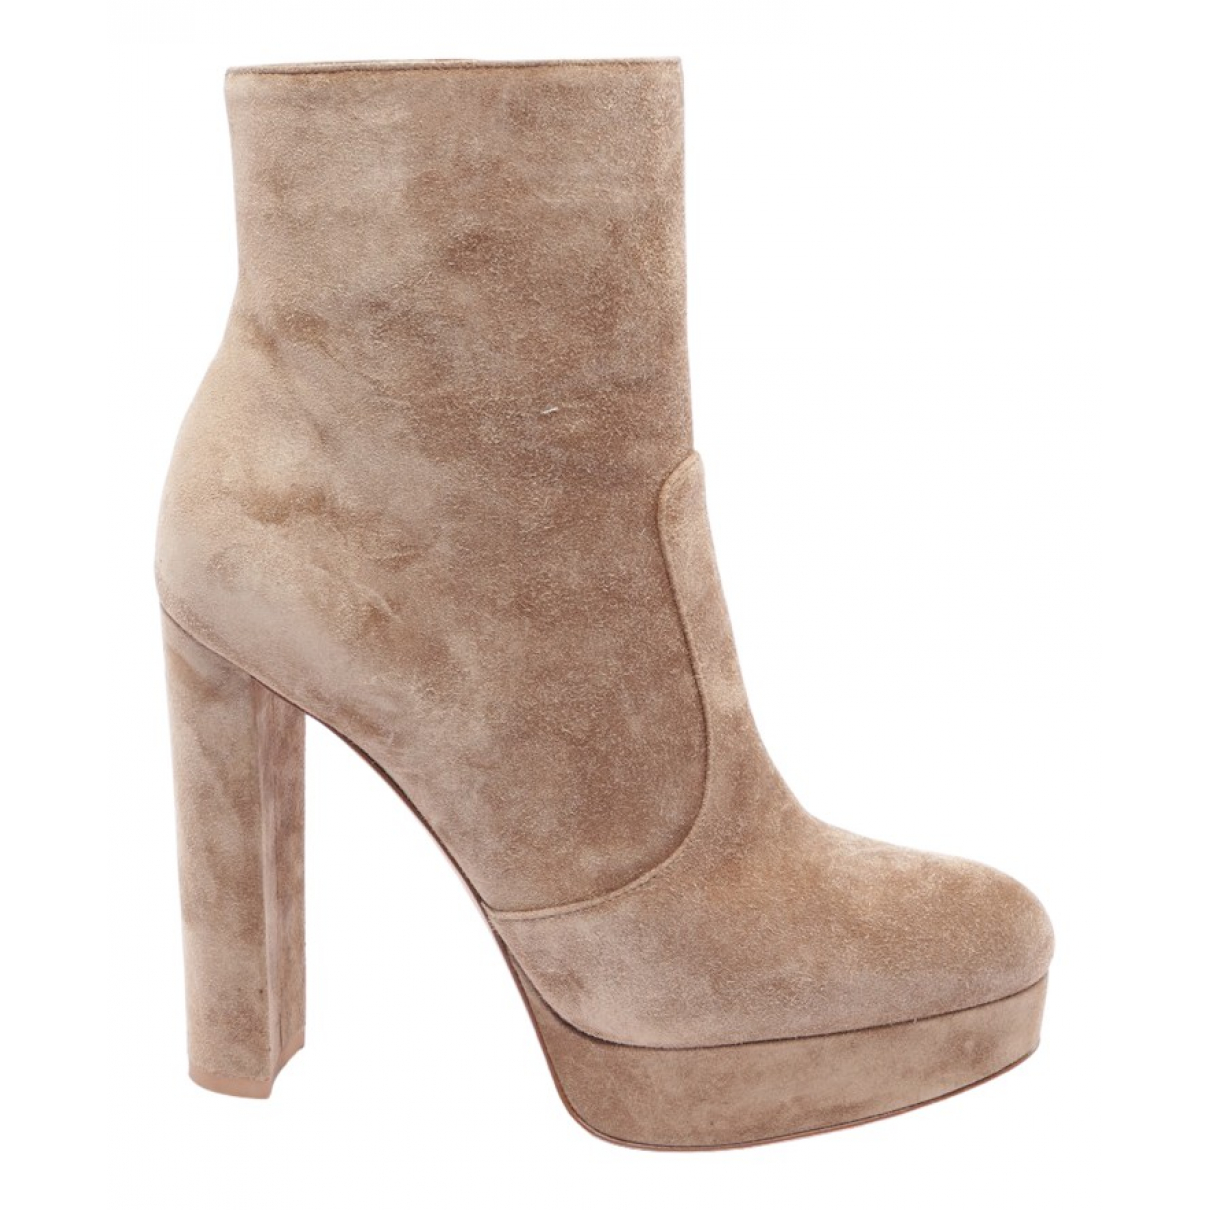 Gianvito Rossi \N Brown Suede Ankle boots for Women 38 EU